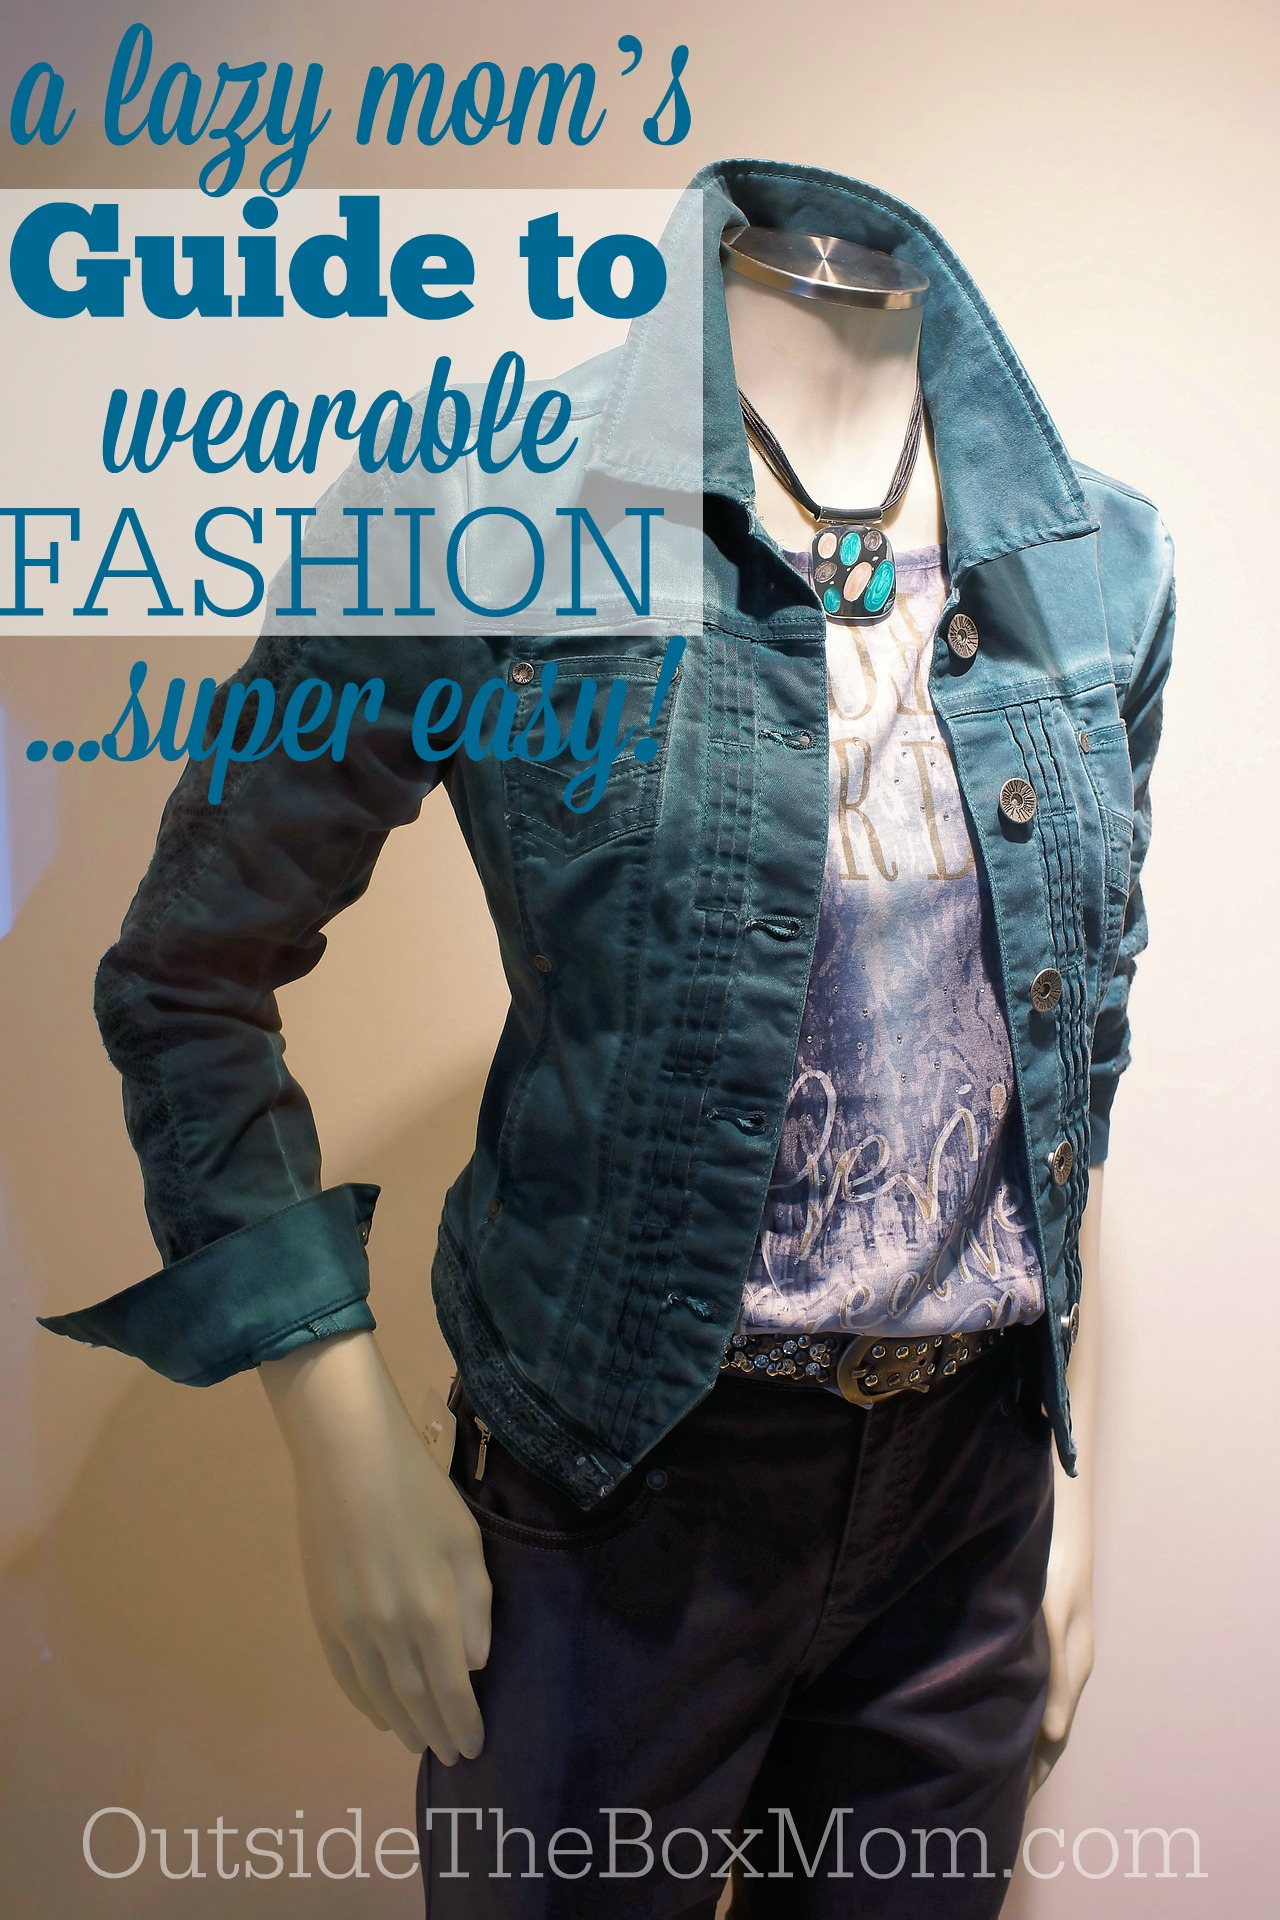 Are you looking for a super easy guide to wearable fashion that you can put together in minutes? Here's your lazy mom guide to fashion in less than 10 steps.